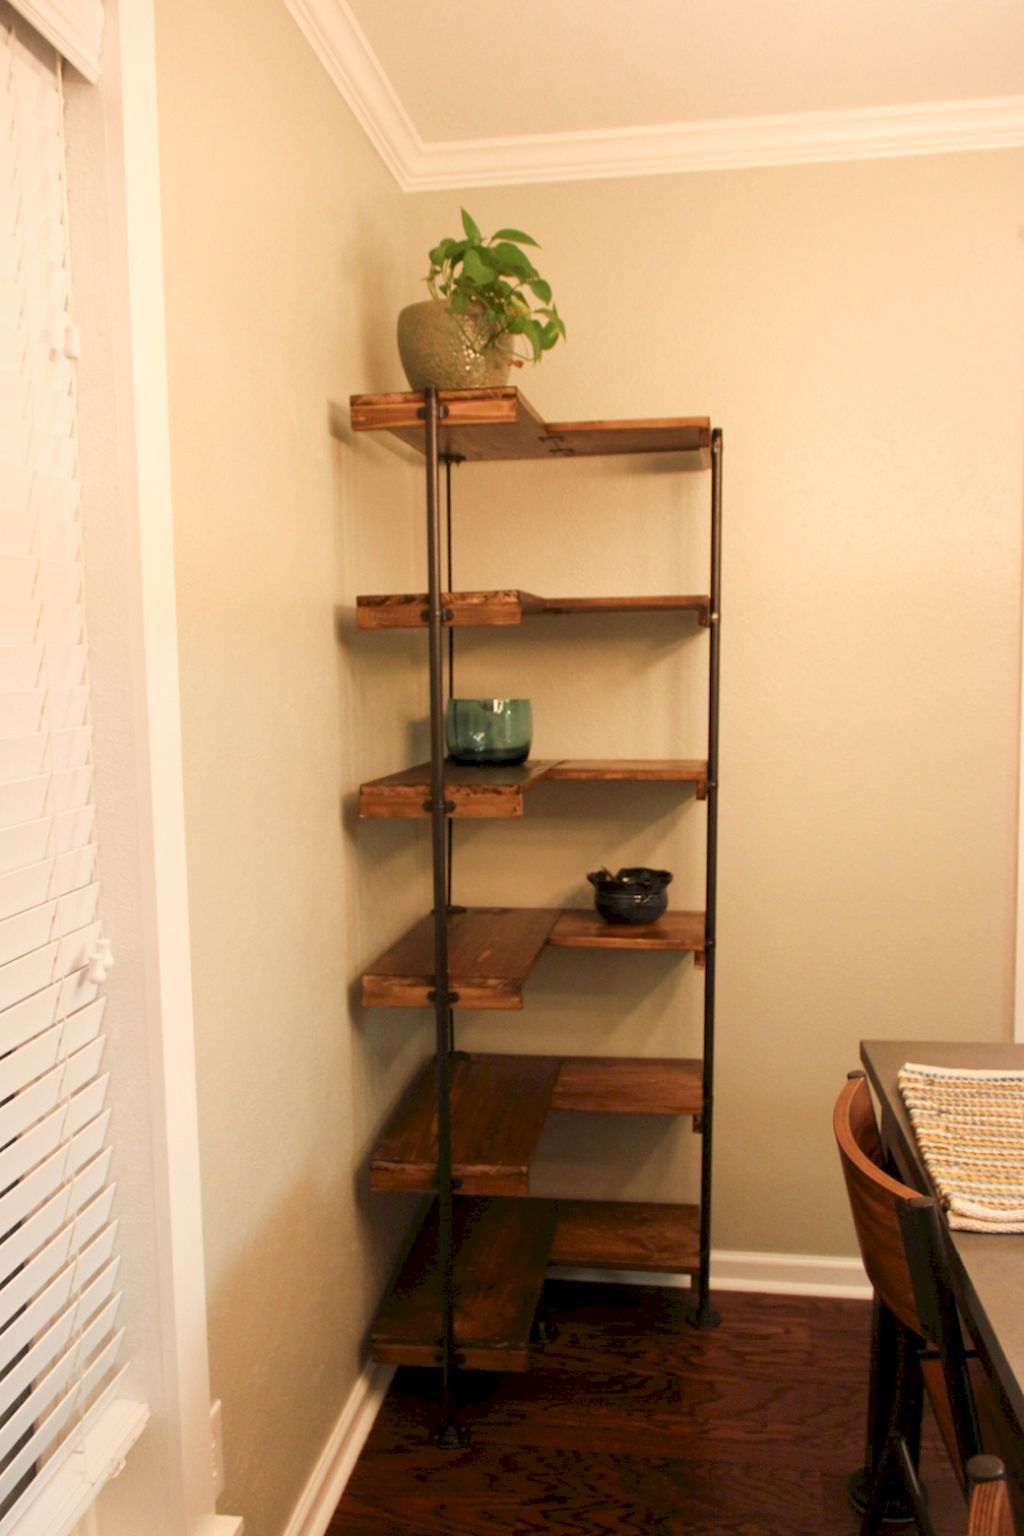 Awesome 30 diy small apartment corner shelves ideas https